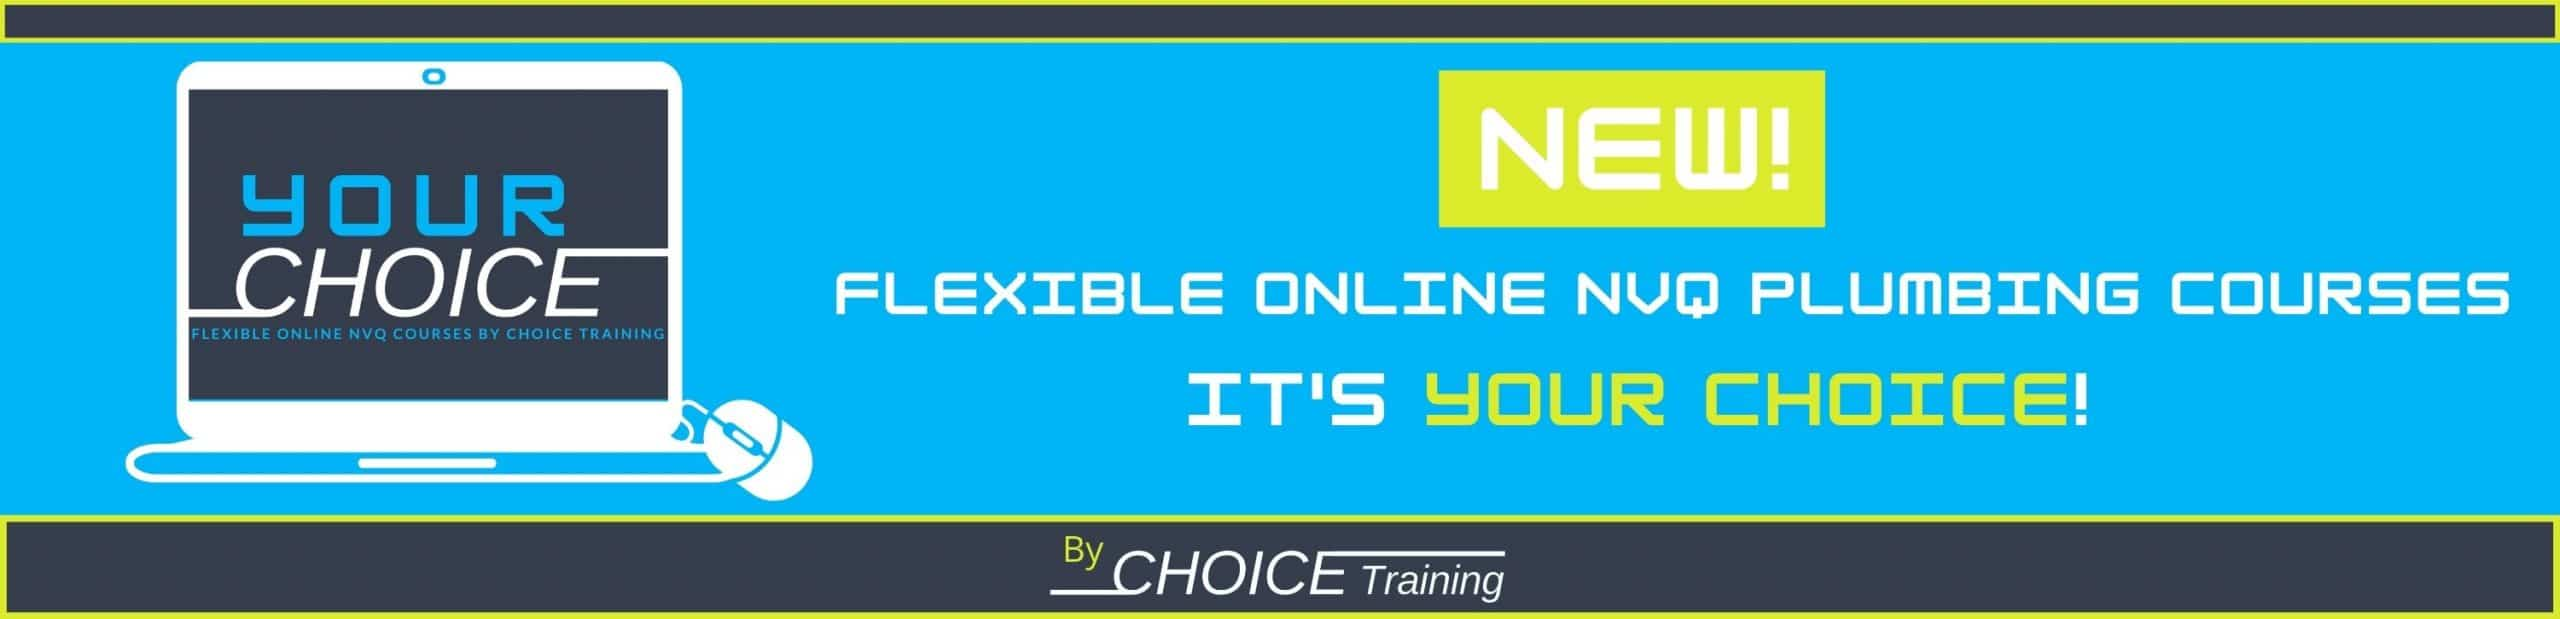 YOUR CHOICE by Choice Training Home page slide 1 Online NVQ info